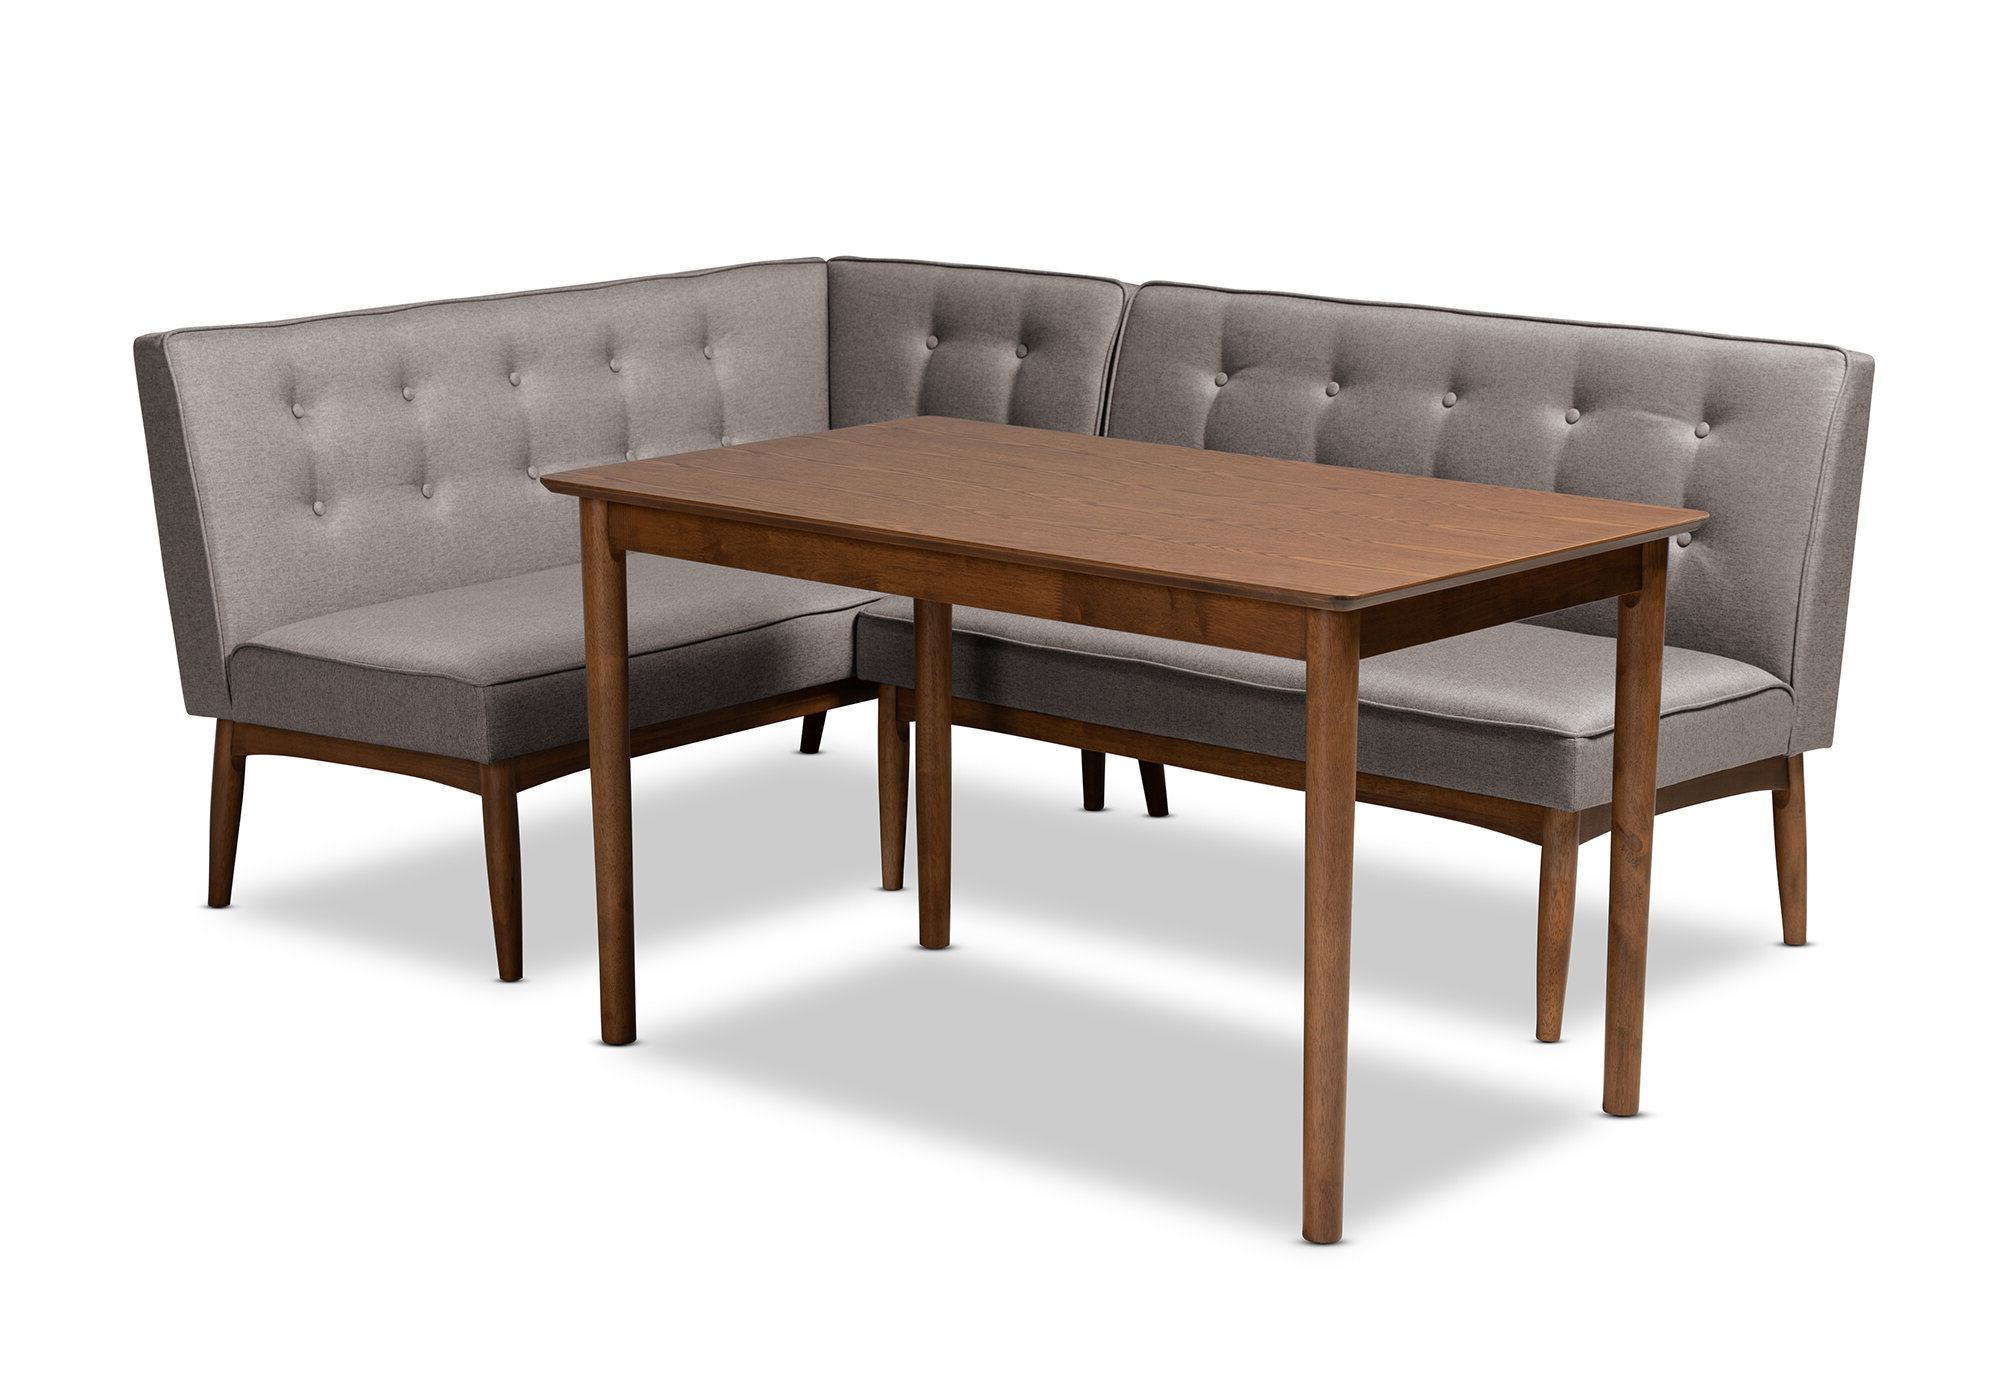 Liles 5 Piece Breakfast Nook Dining Sets Regarding Most Recently Released Bopp Mid Century Modern Upholstered 3 Piece Breakfast Nook Dining Set (Gallery 4 of 20)